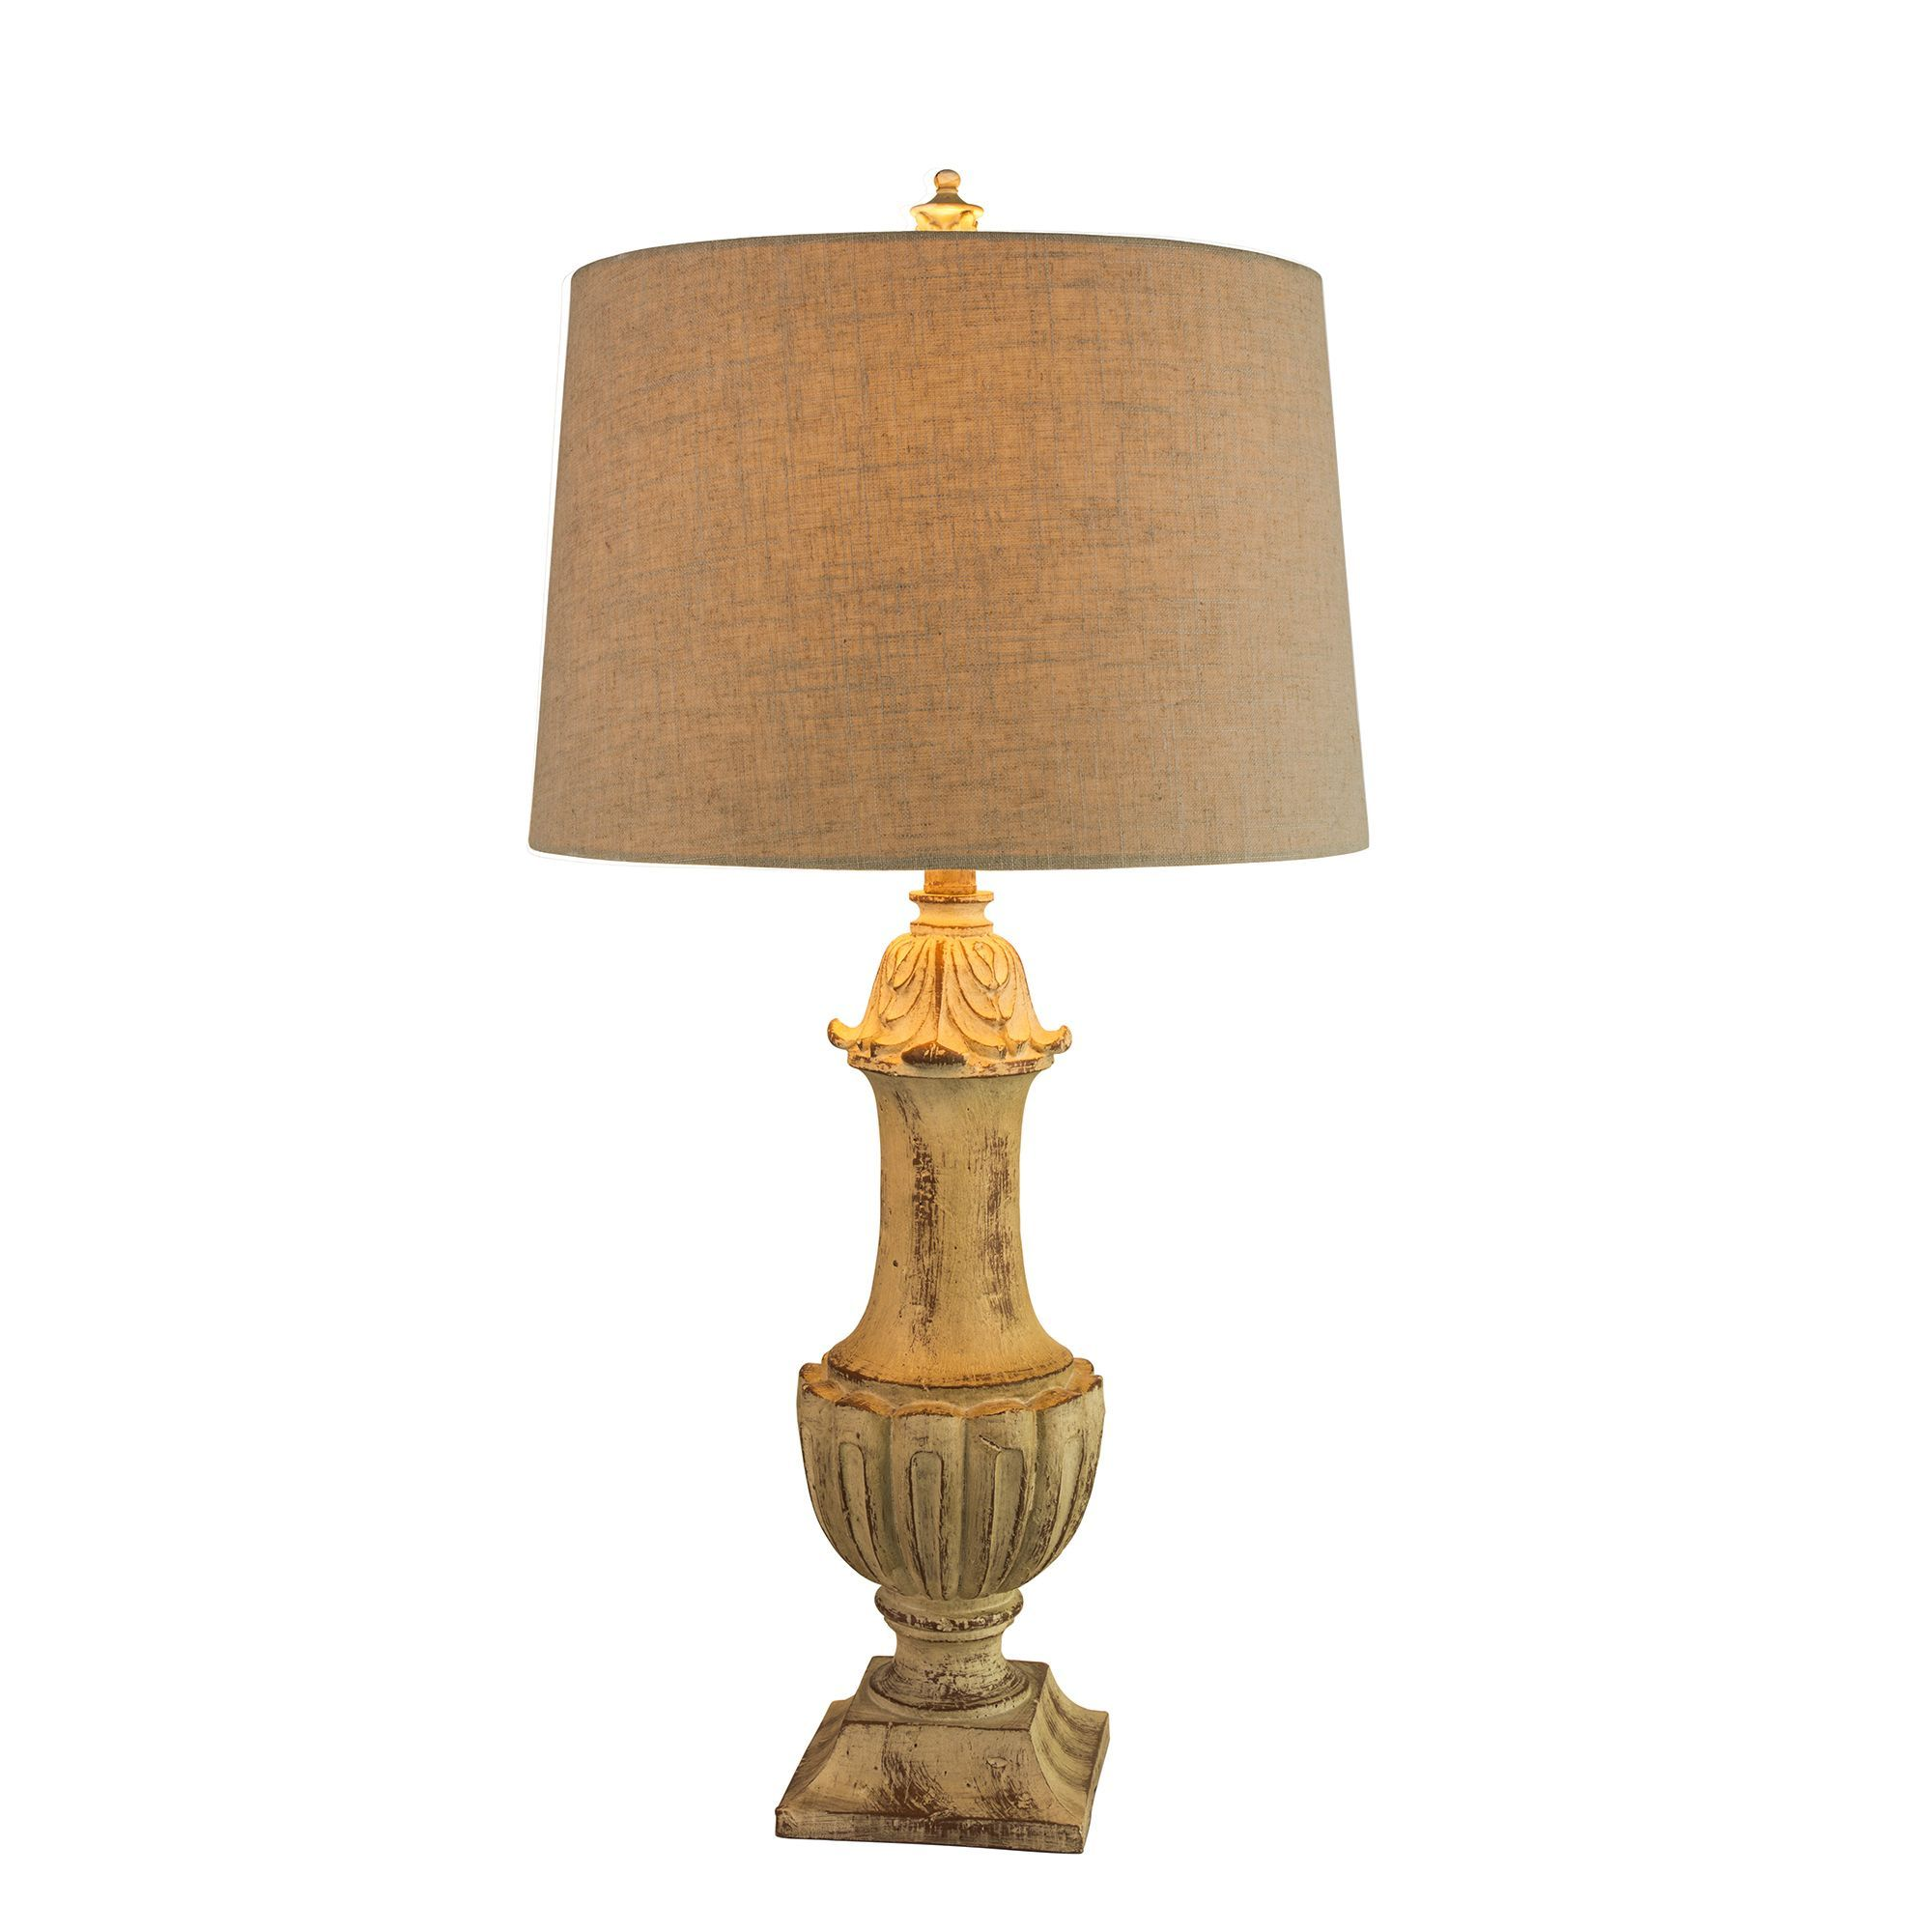 Fangio Lightings 6185nat 32 Inch Resin Table Lamp In Nature Finish Body